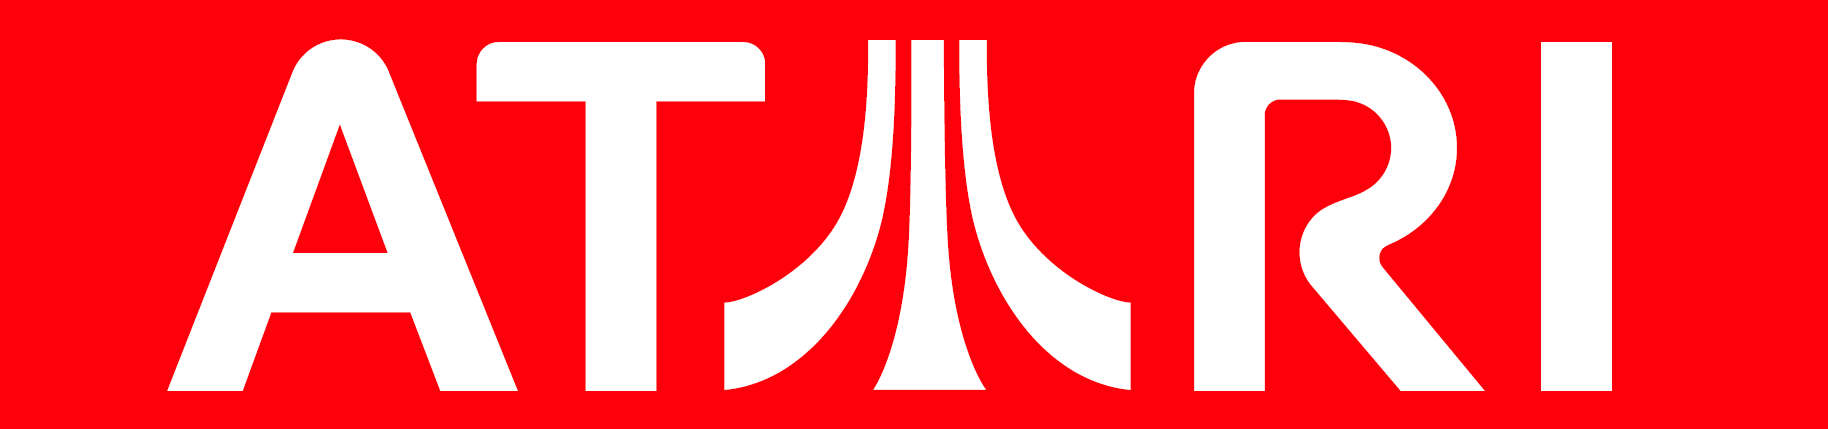 Press Release: AtGames and Atari Announce Fall 2017 Classic Gaming Hardware Lineup